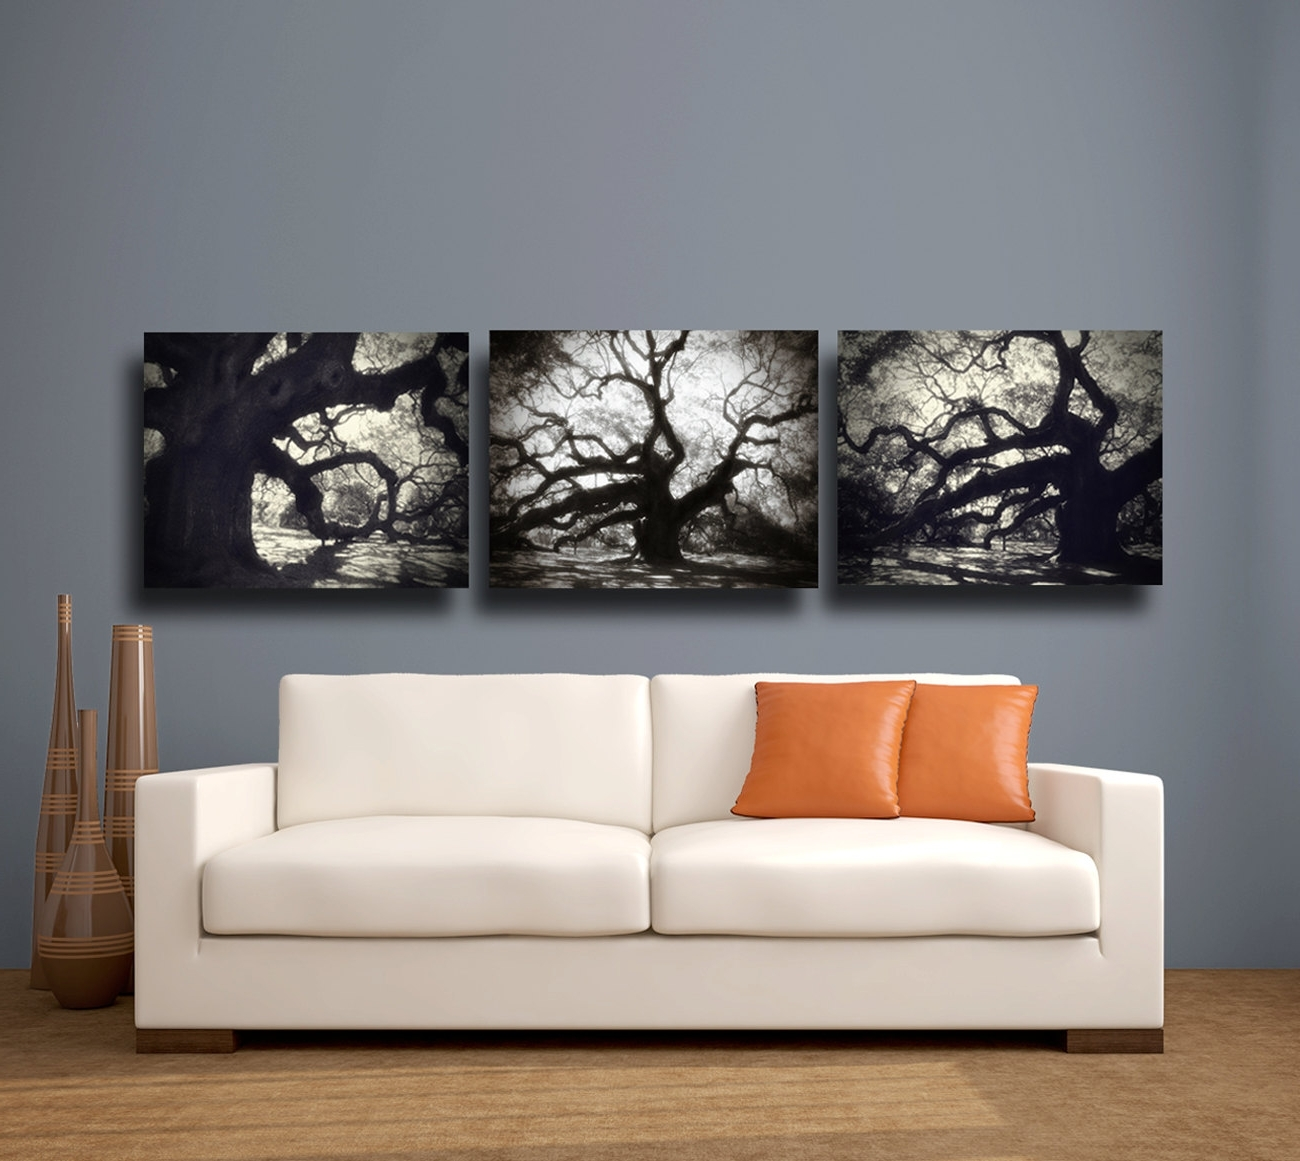 Living Room Black And White Photography Wall Art